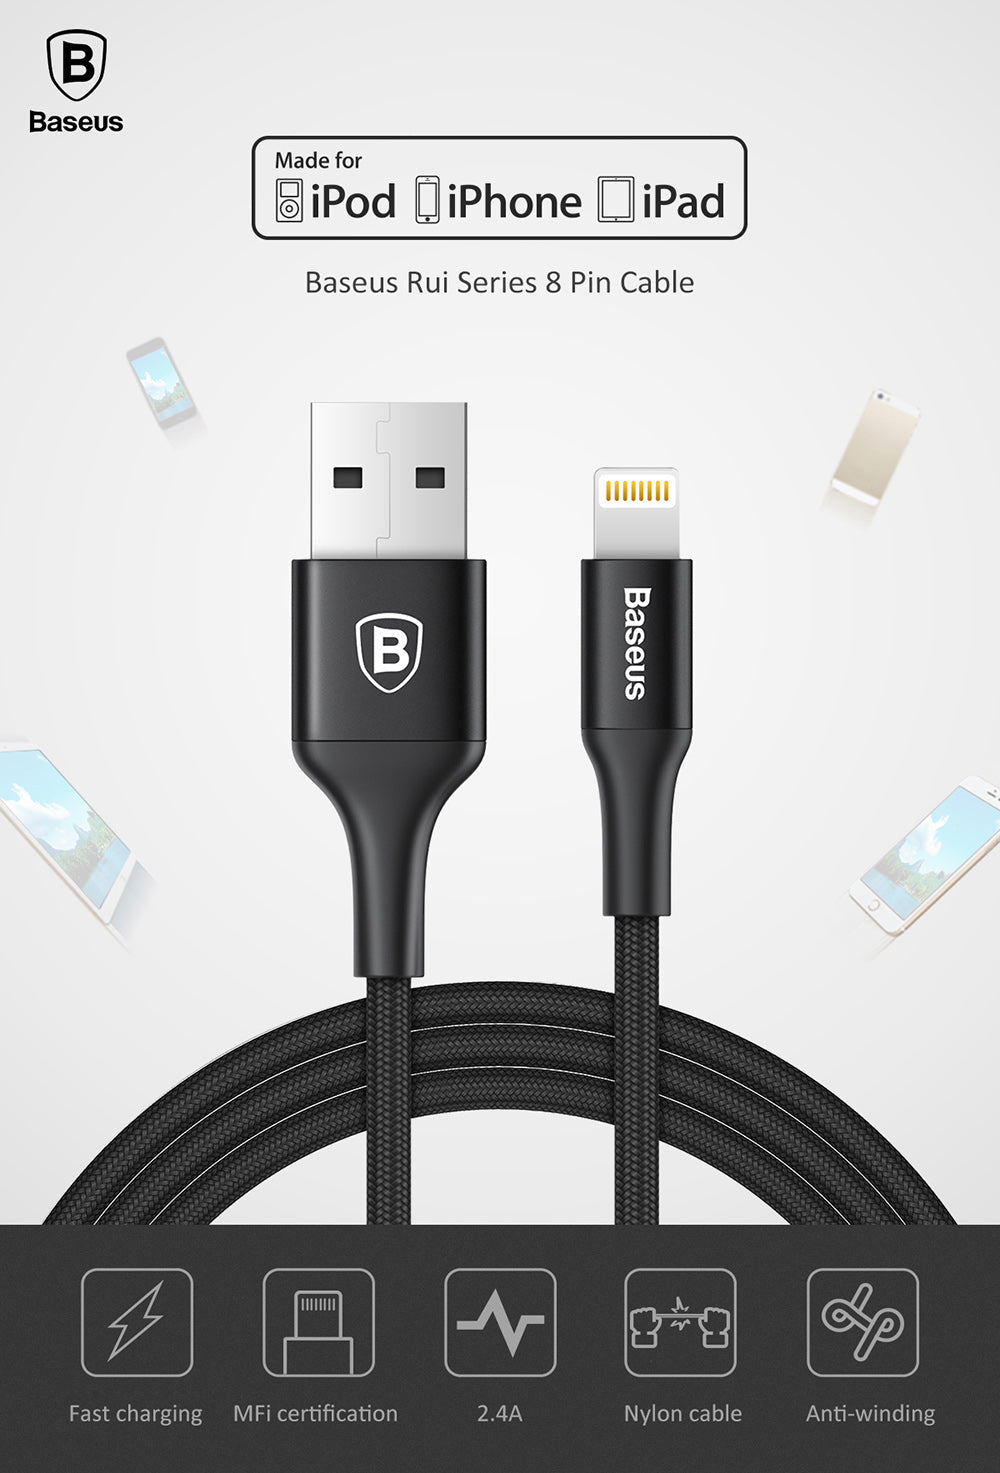 Baseus Rui Series - MFI Certified Lightning Cable